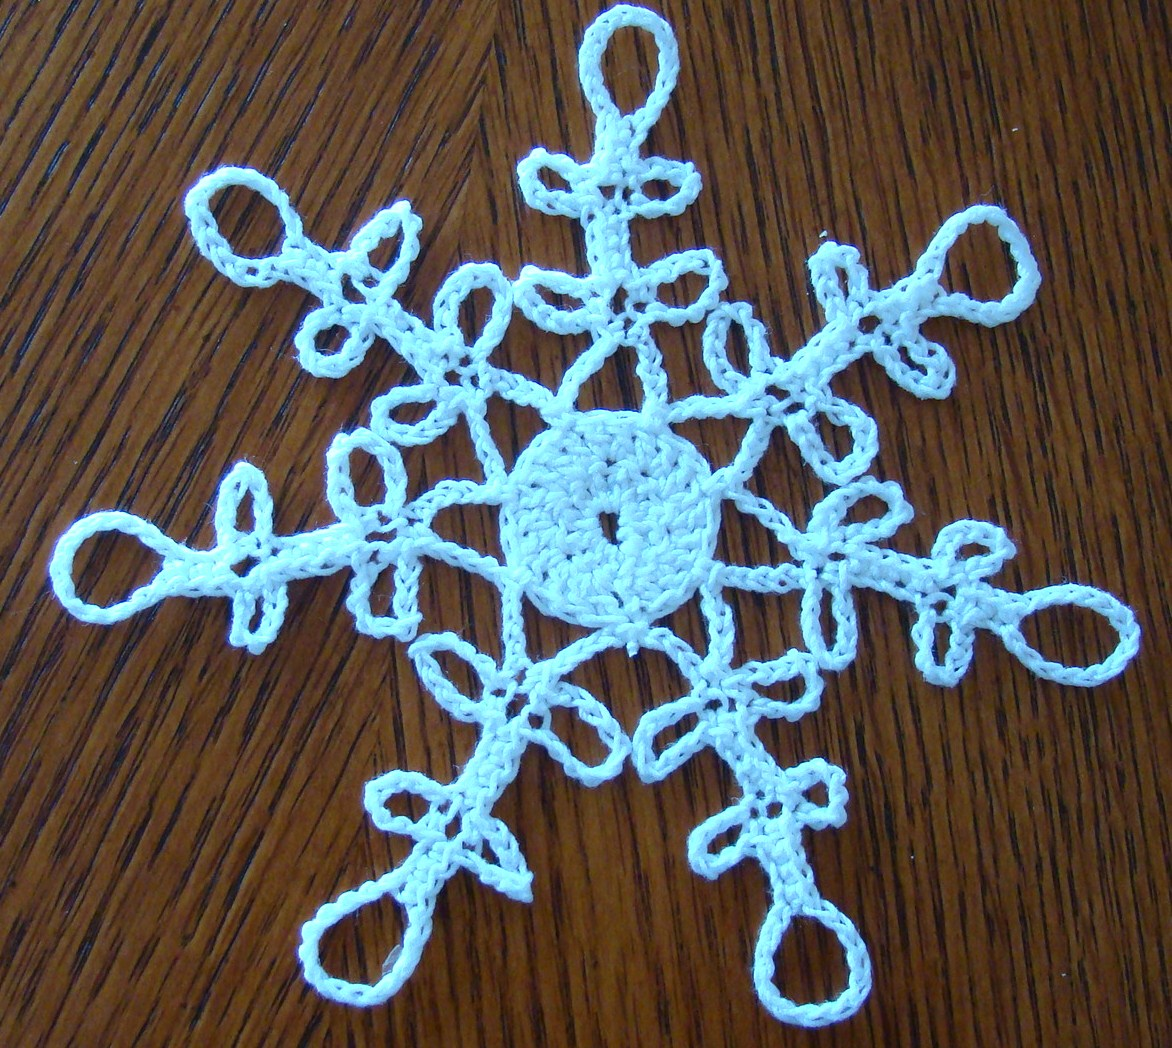 Free Crochet Pattern Snowflakes Ornament : Crafts By Starlight: Crochet Snowflake